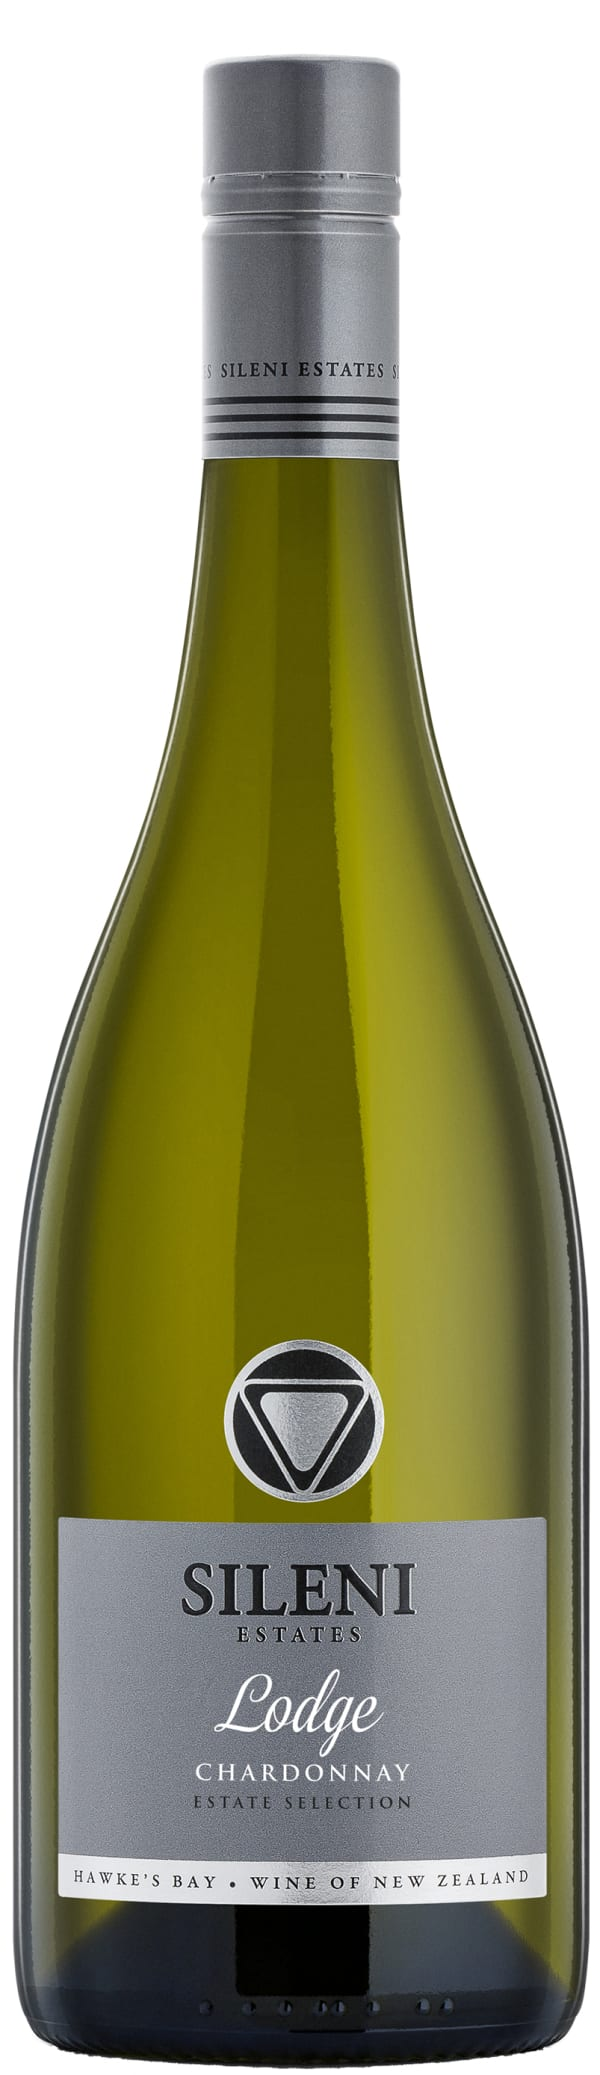 Sileni The Lodge Chardonnay 2015